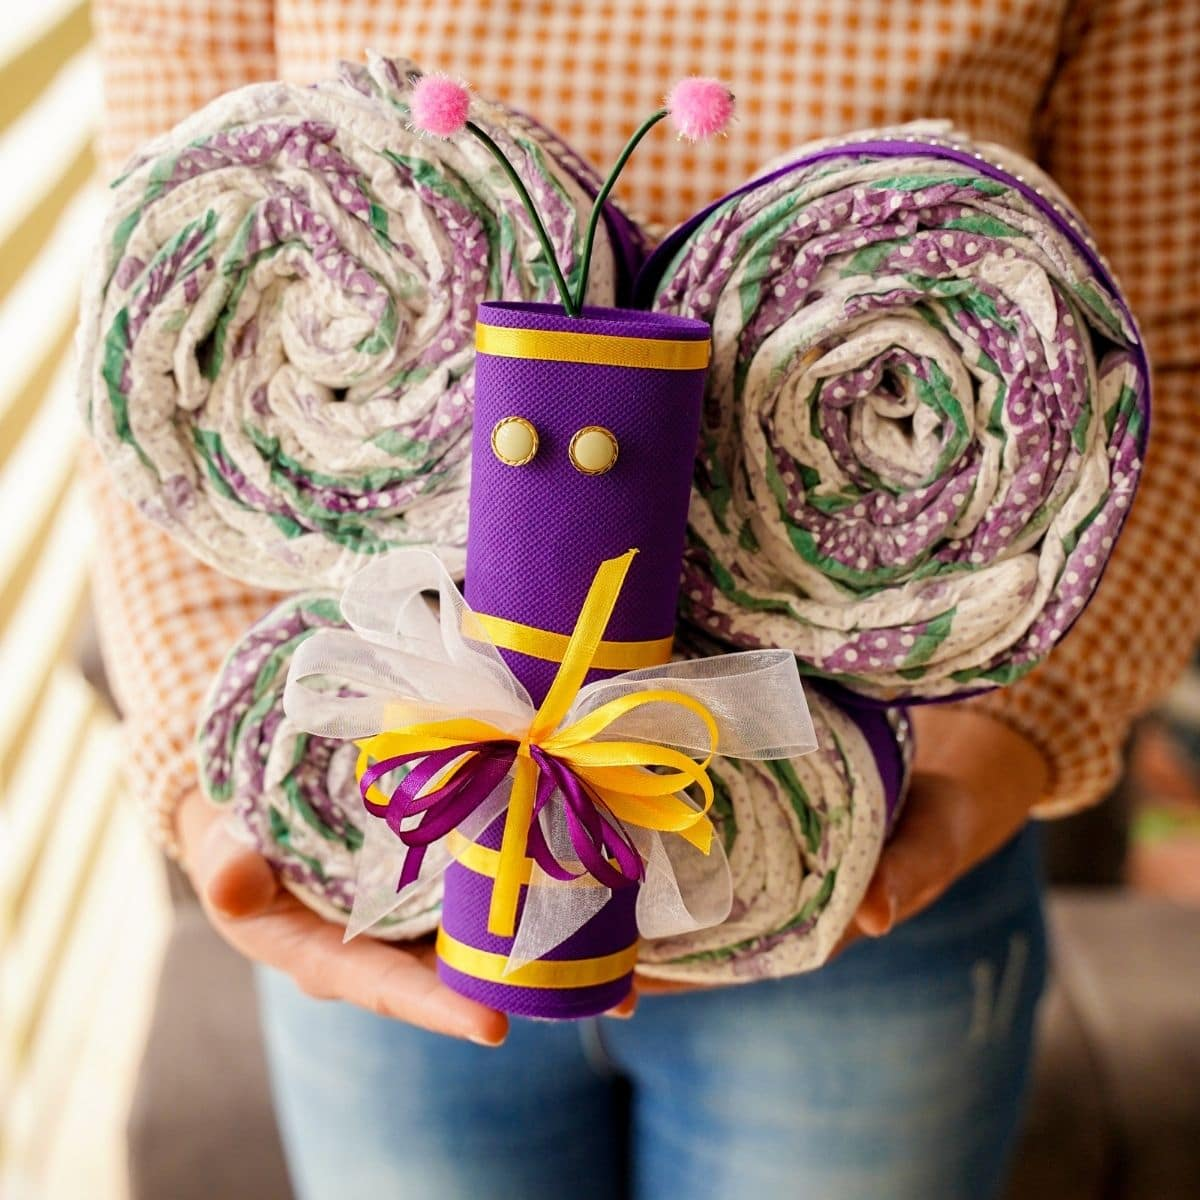 Woman in sweater holding butterfly diaper cake